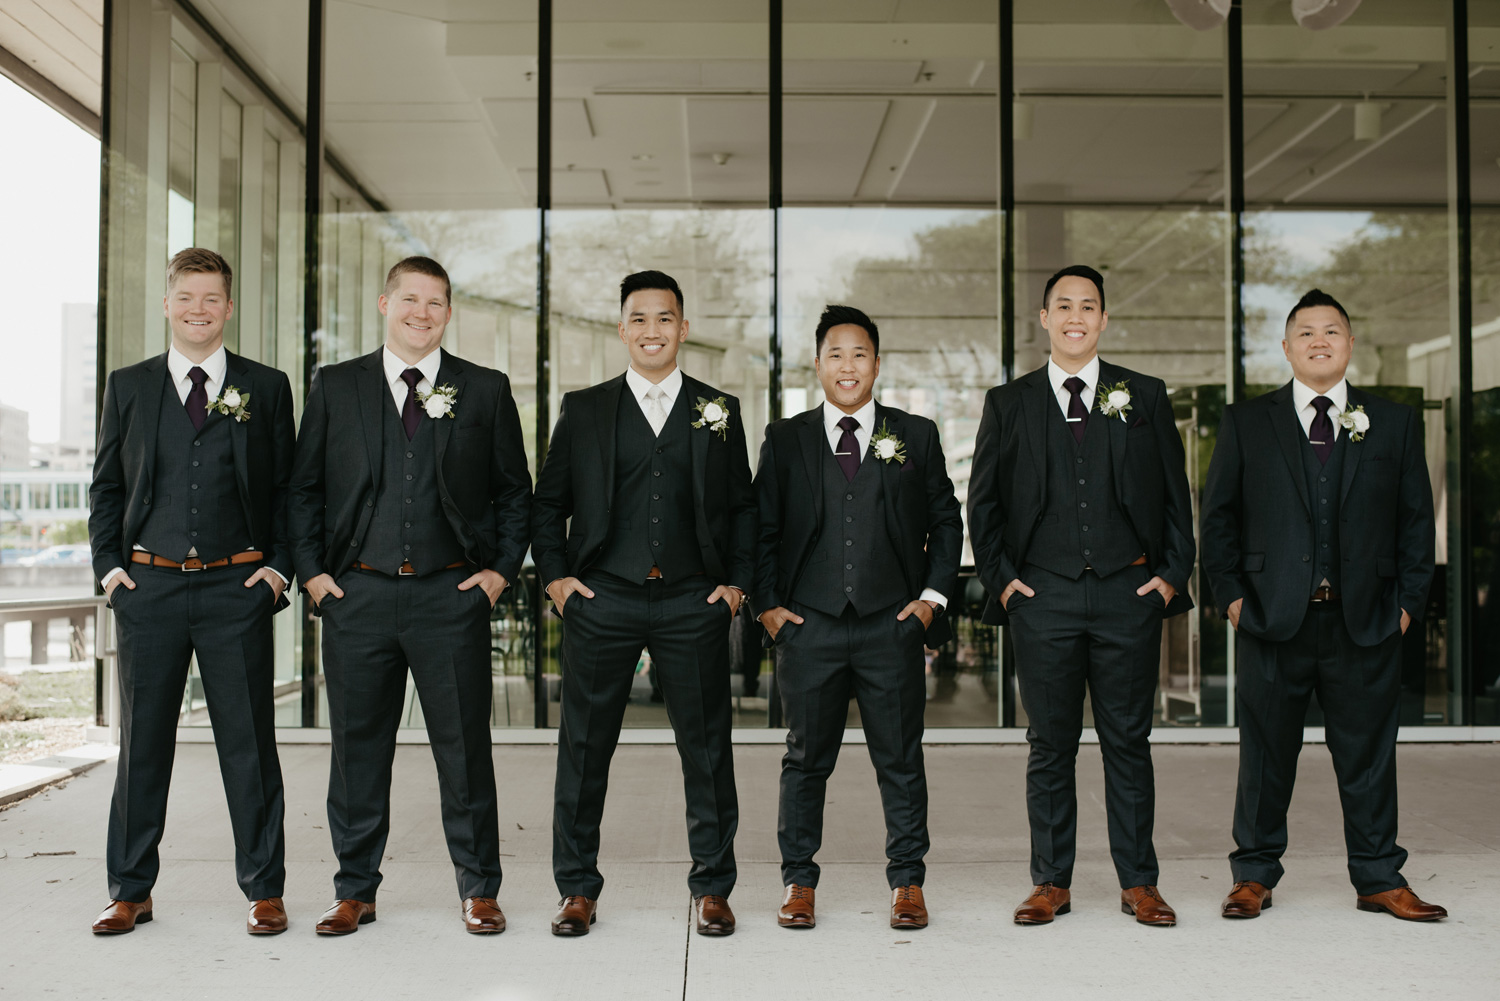 Groom standing with groomsmen for portrait